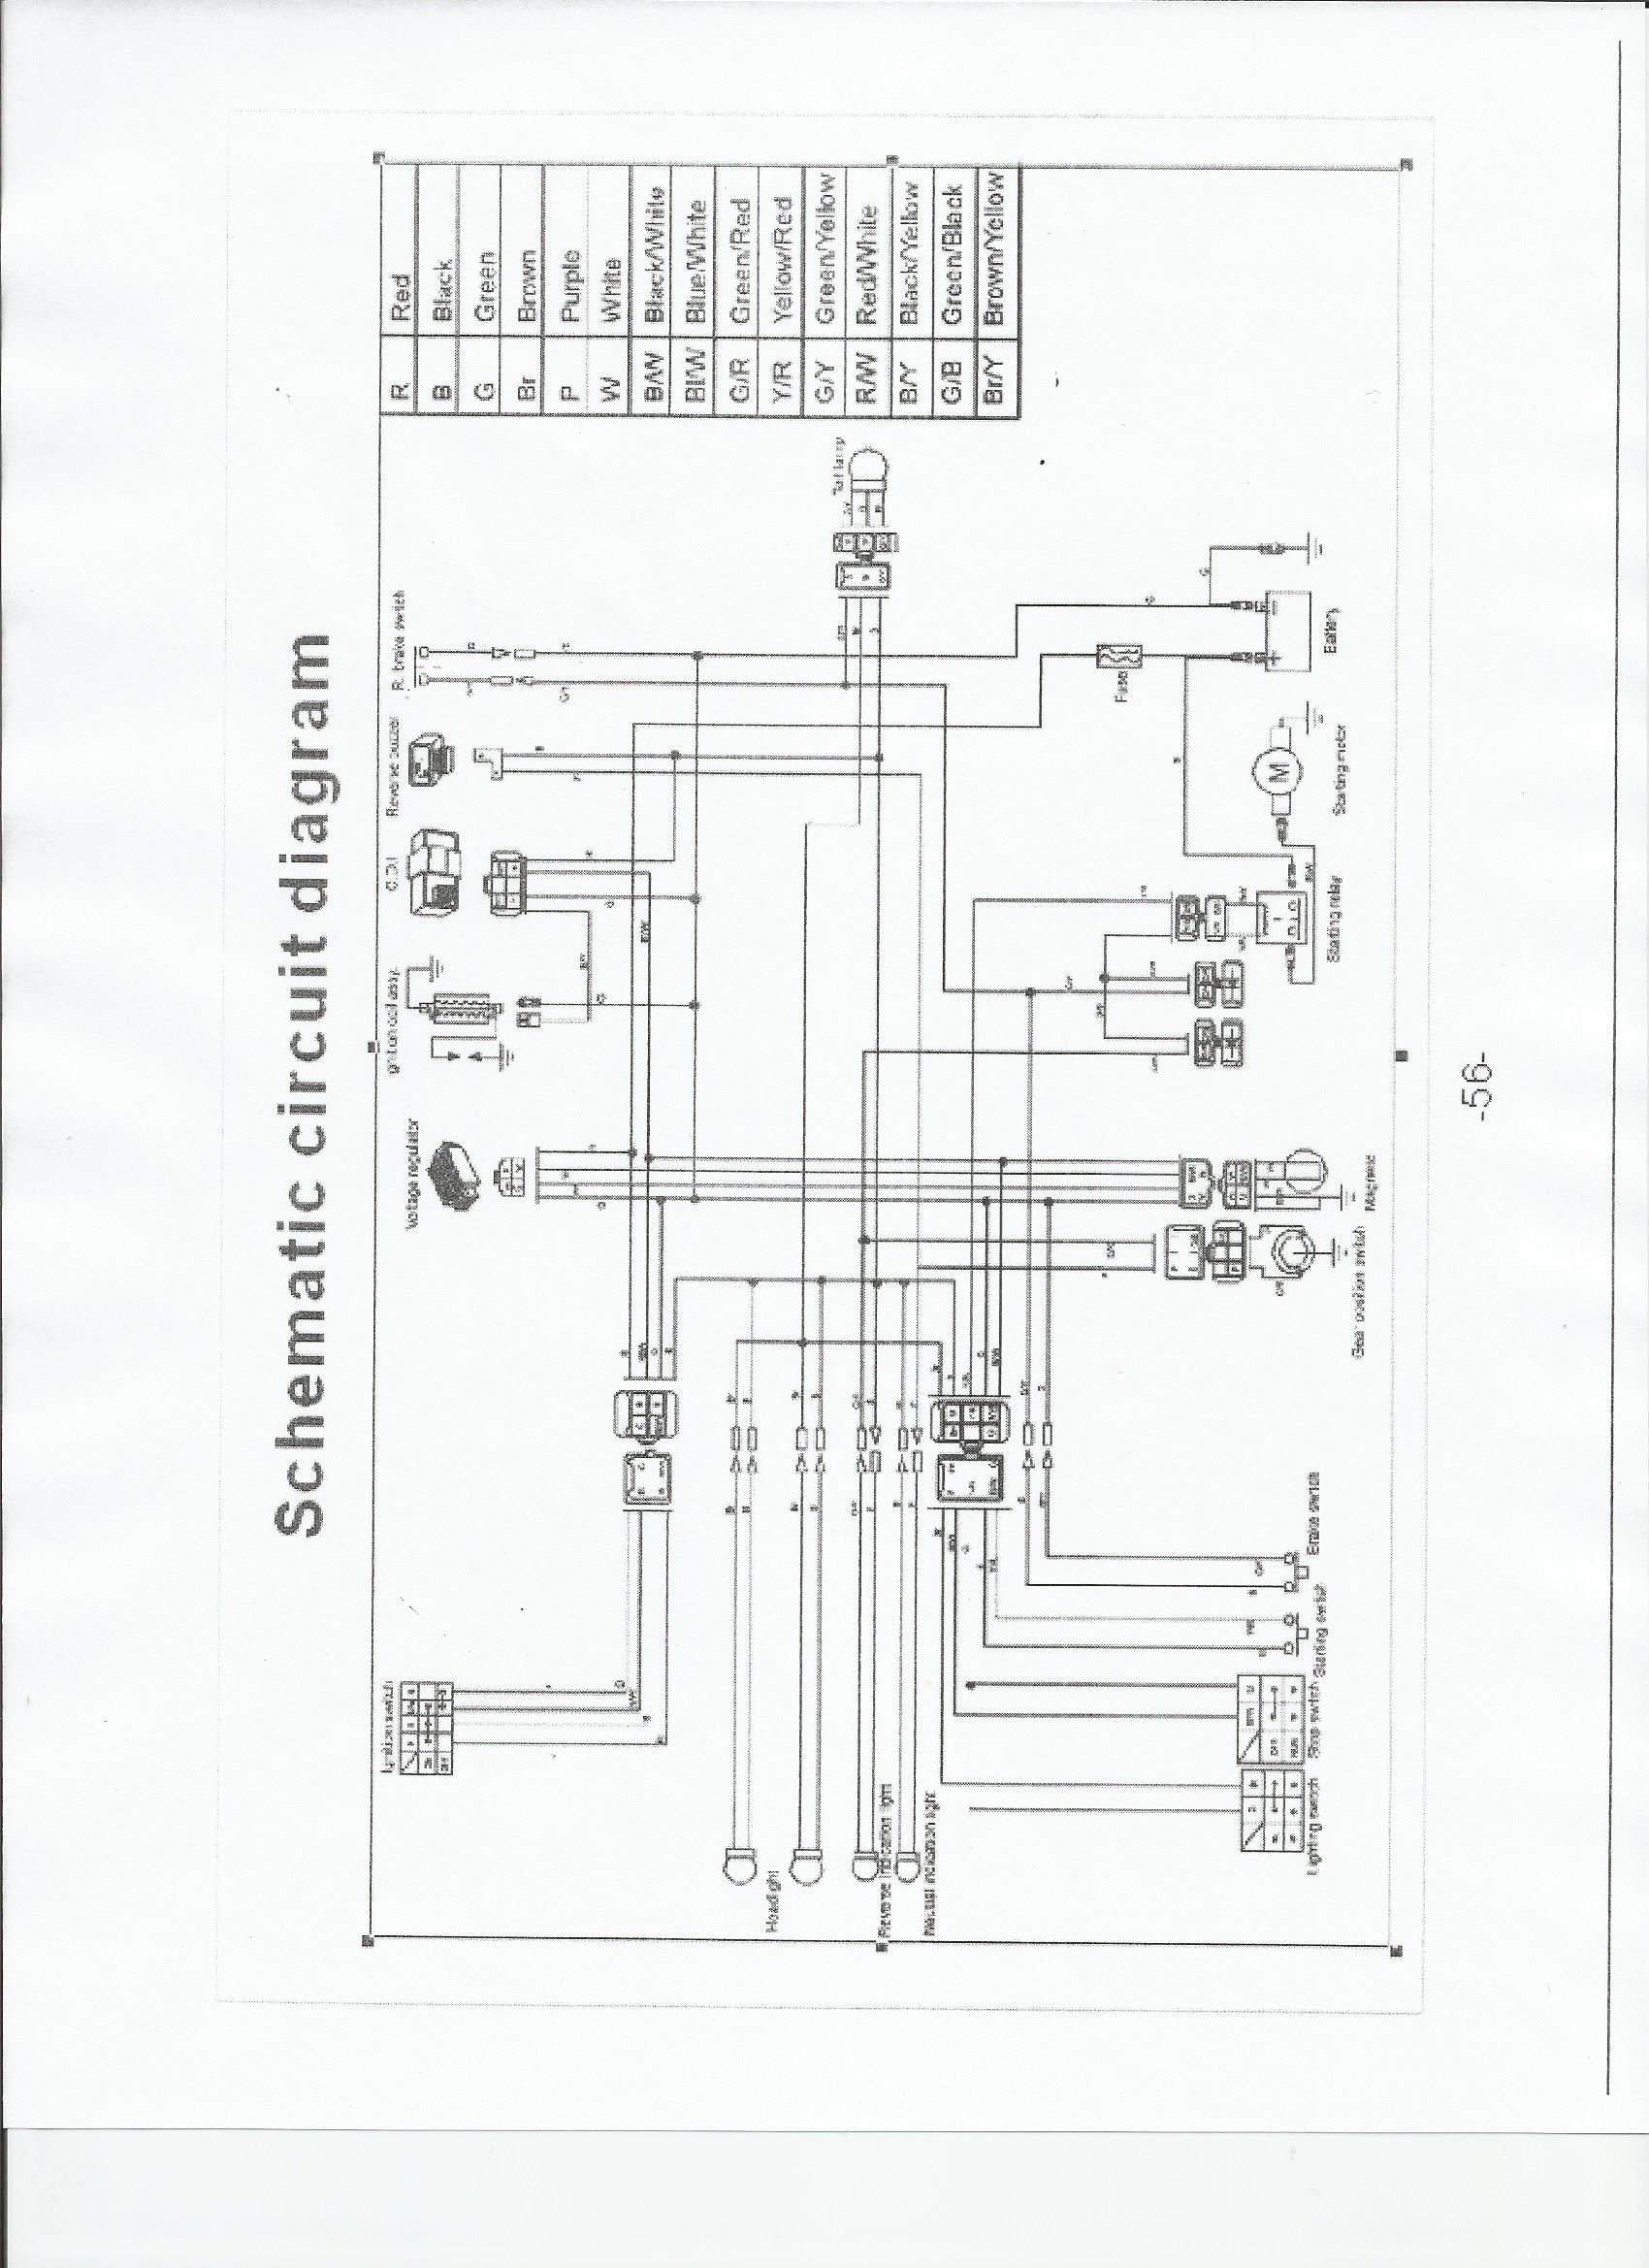 tao tao wiring schematic taotao mini and youth atv wiring schematic familygokarts support quadzilla 250 wiring diagram at gsmx.co